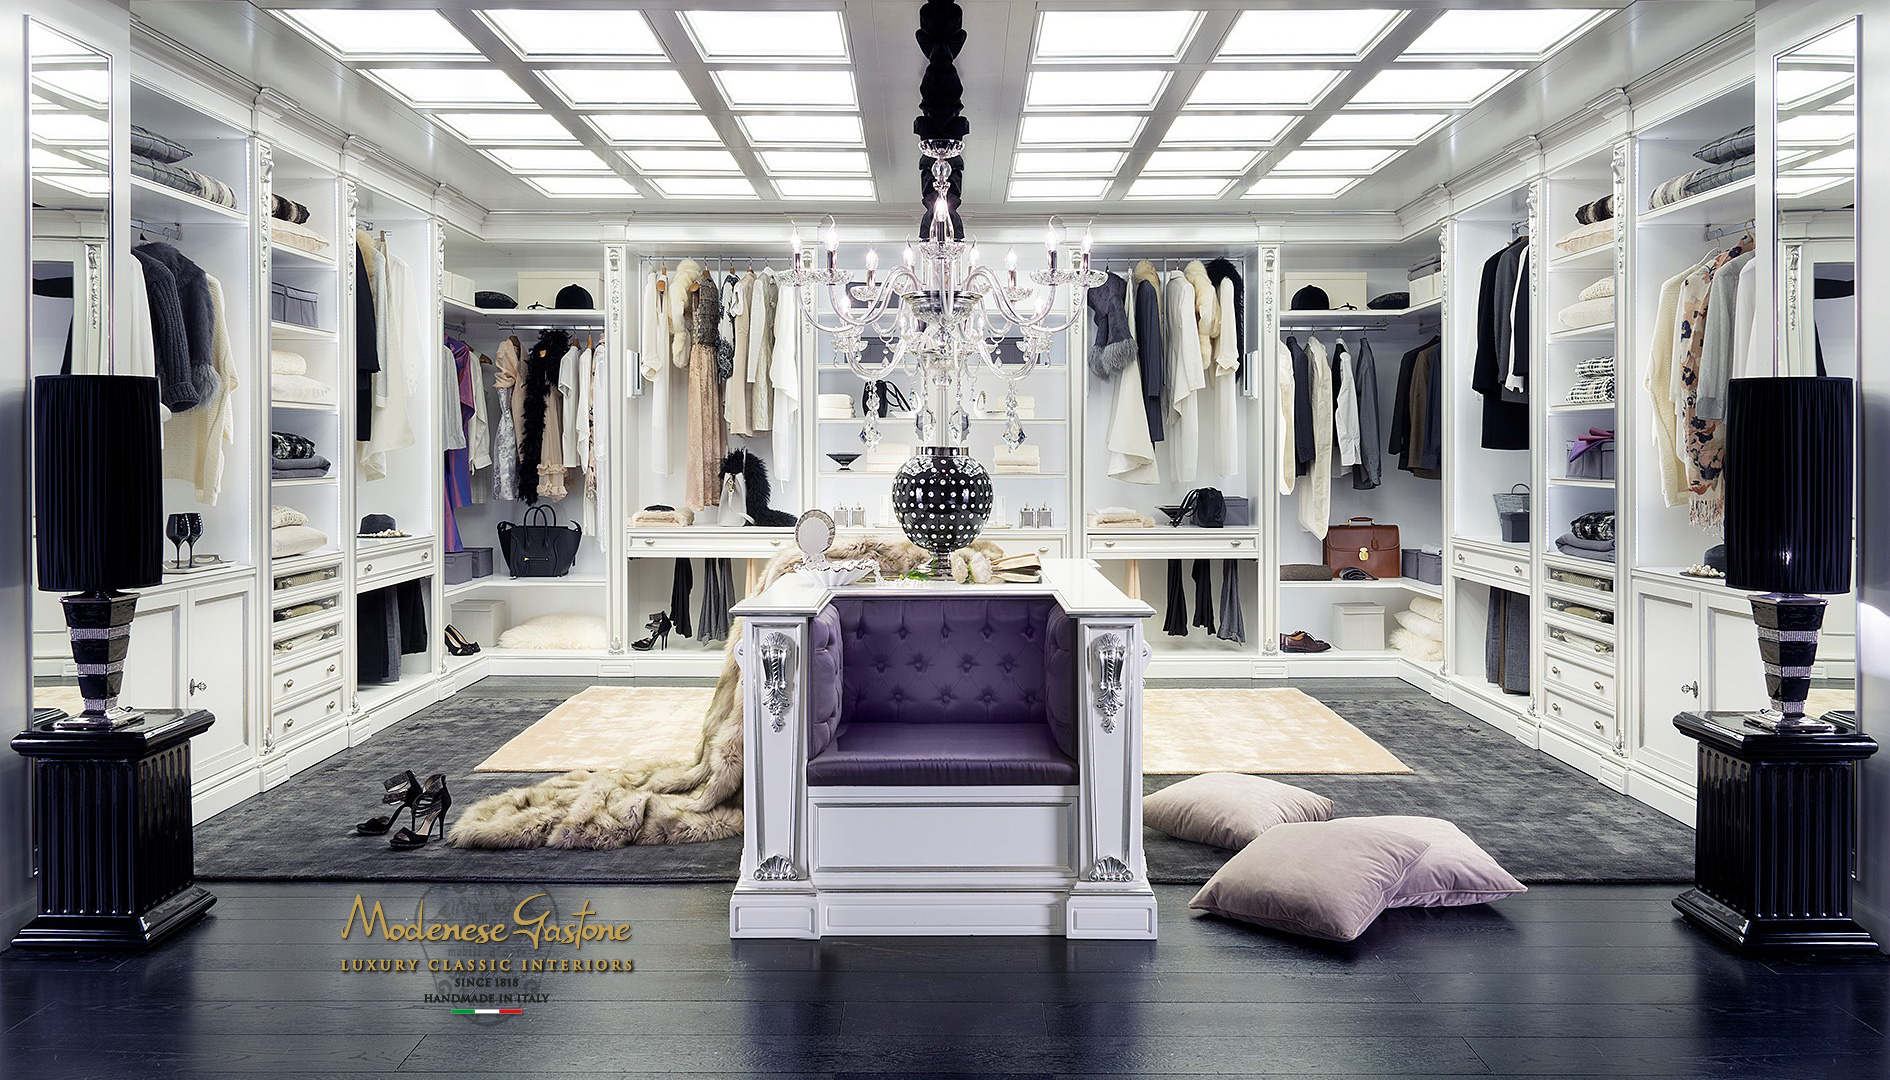 High End Walkin Closet Design For Large Room Classic Italian - High end closet design